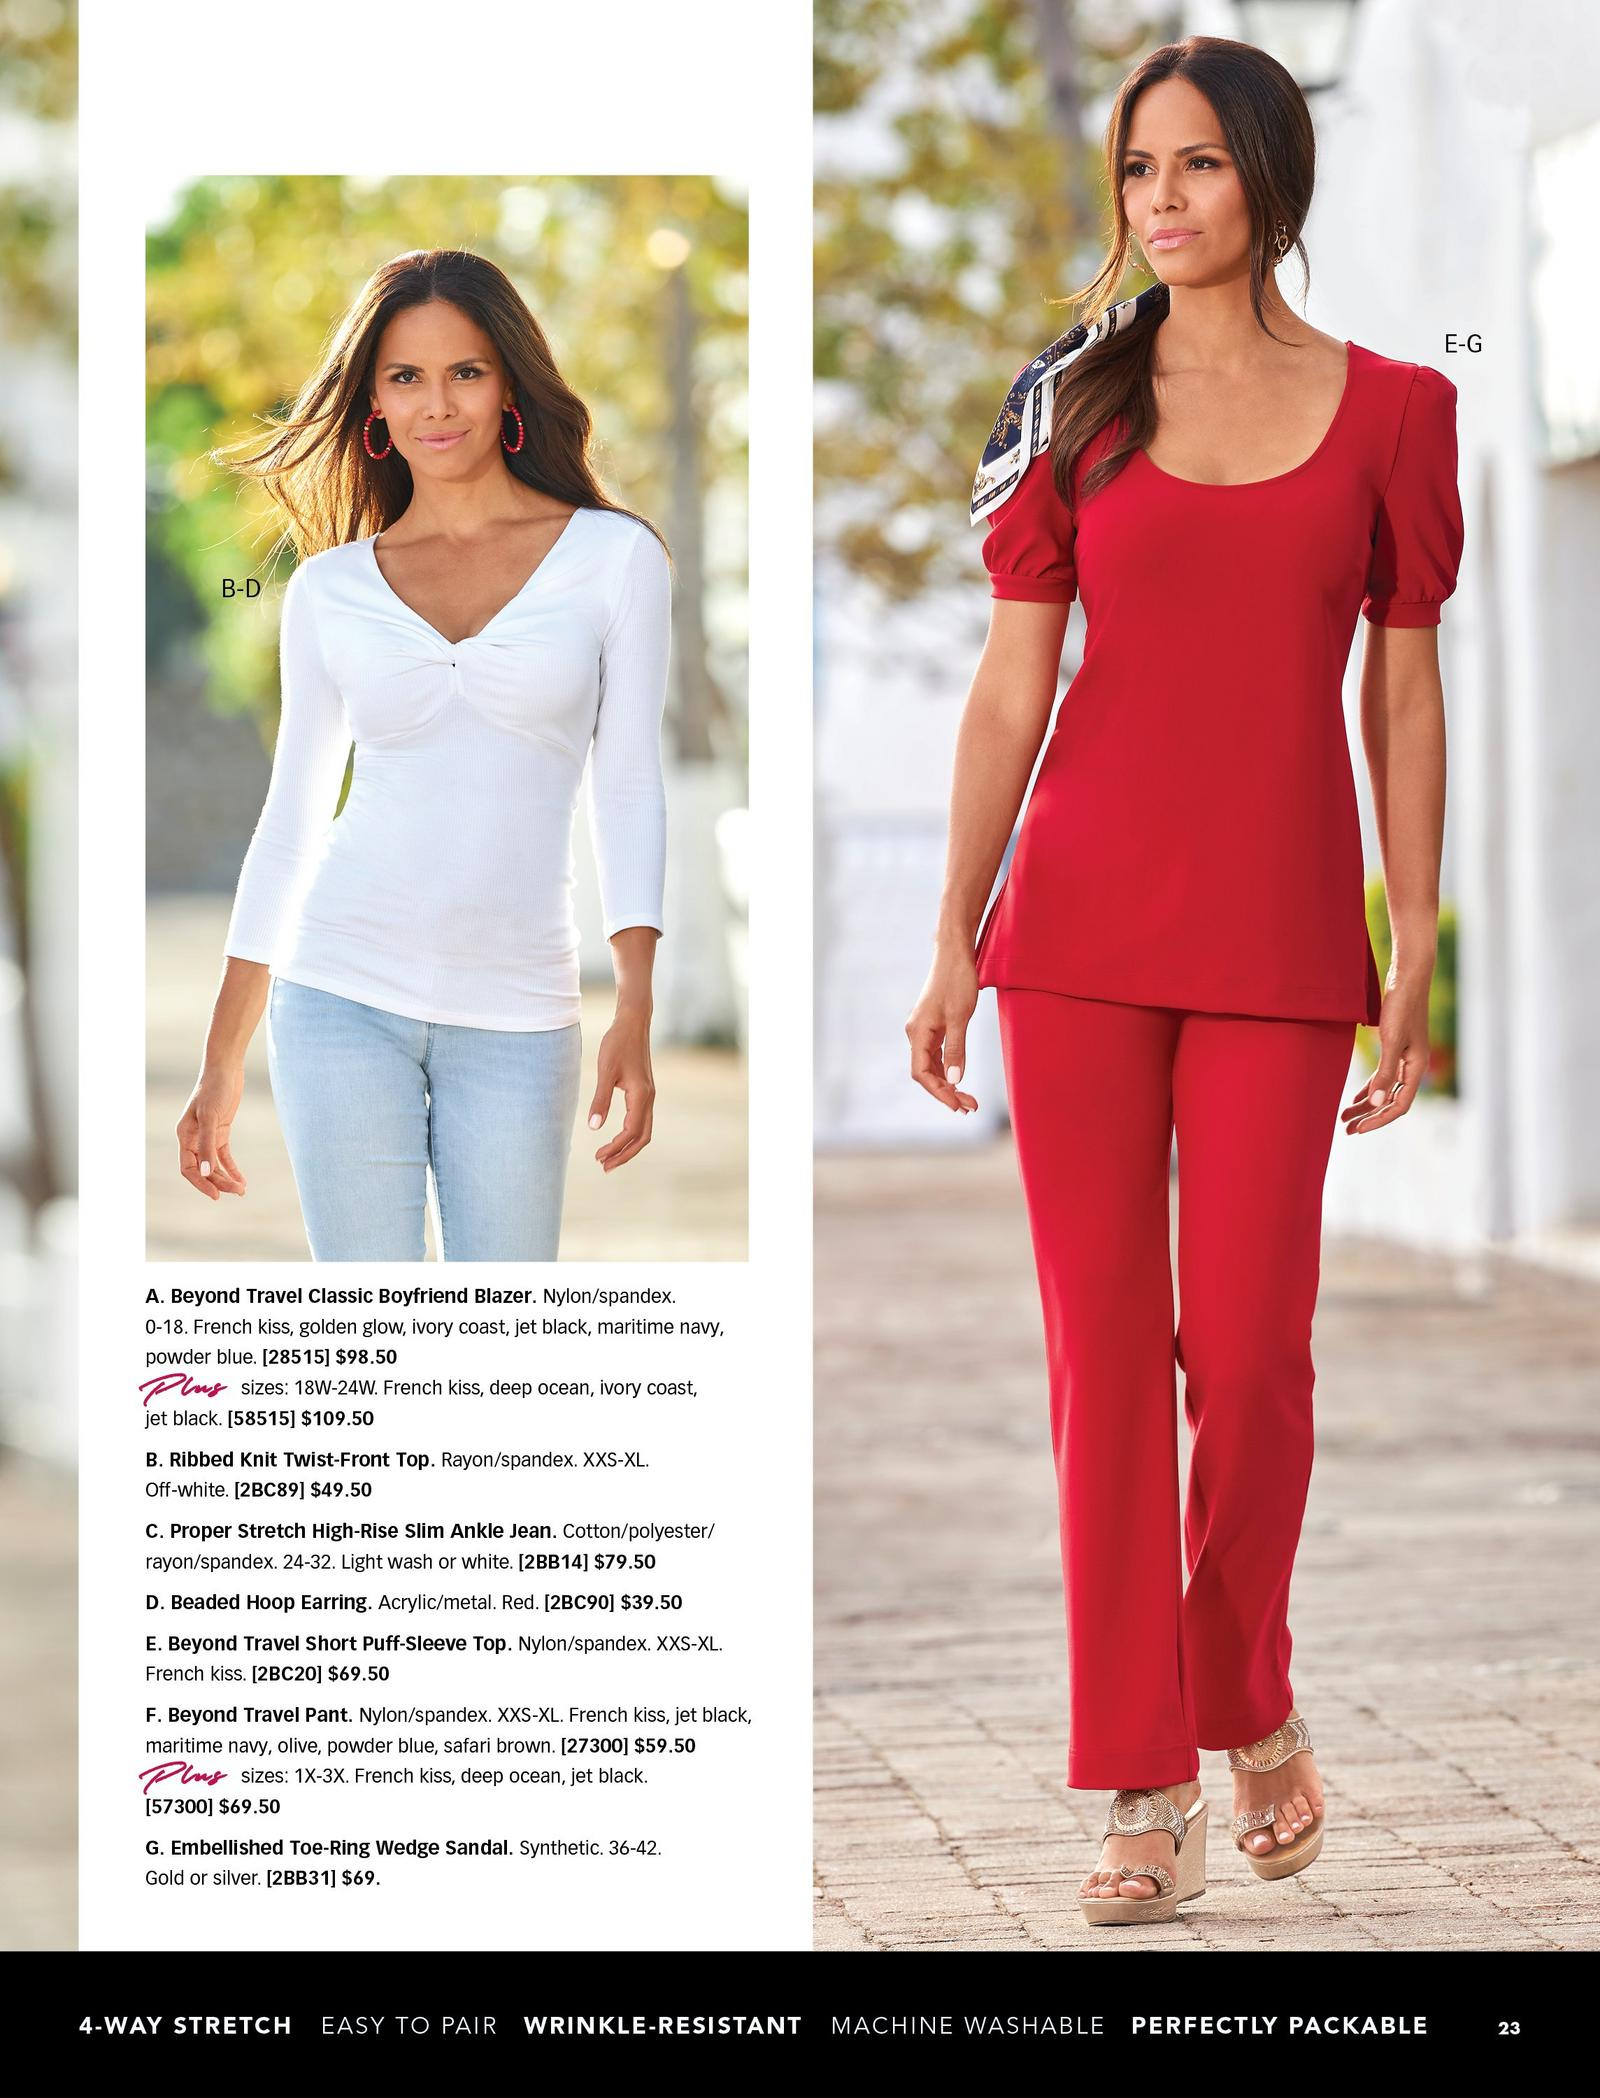 left model wearing a white ribbed twist-front top, red hoop earrings, and light wash jeans. right model wearing a red puff-sleeve top, red pants, and gold wedges.